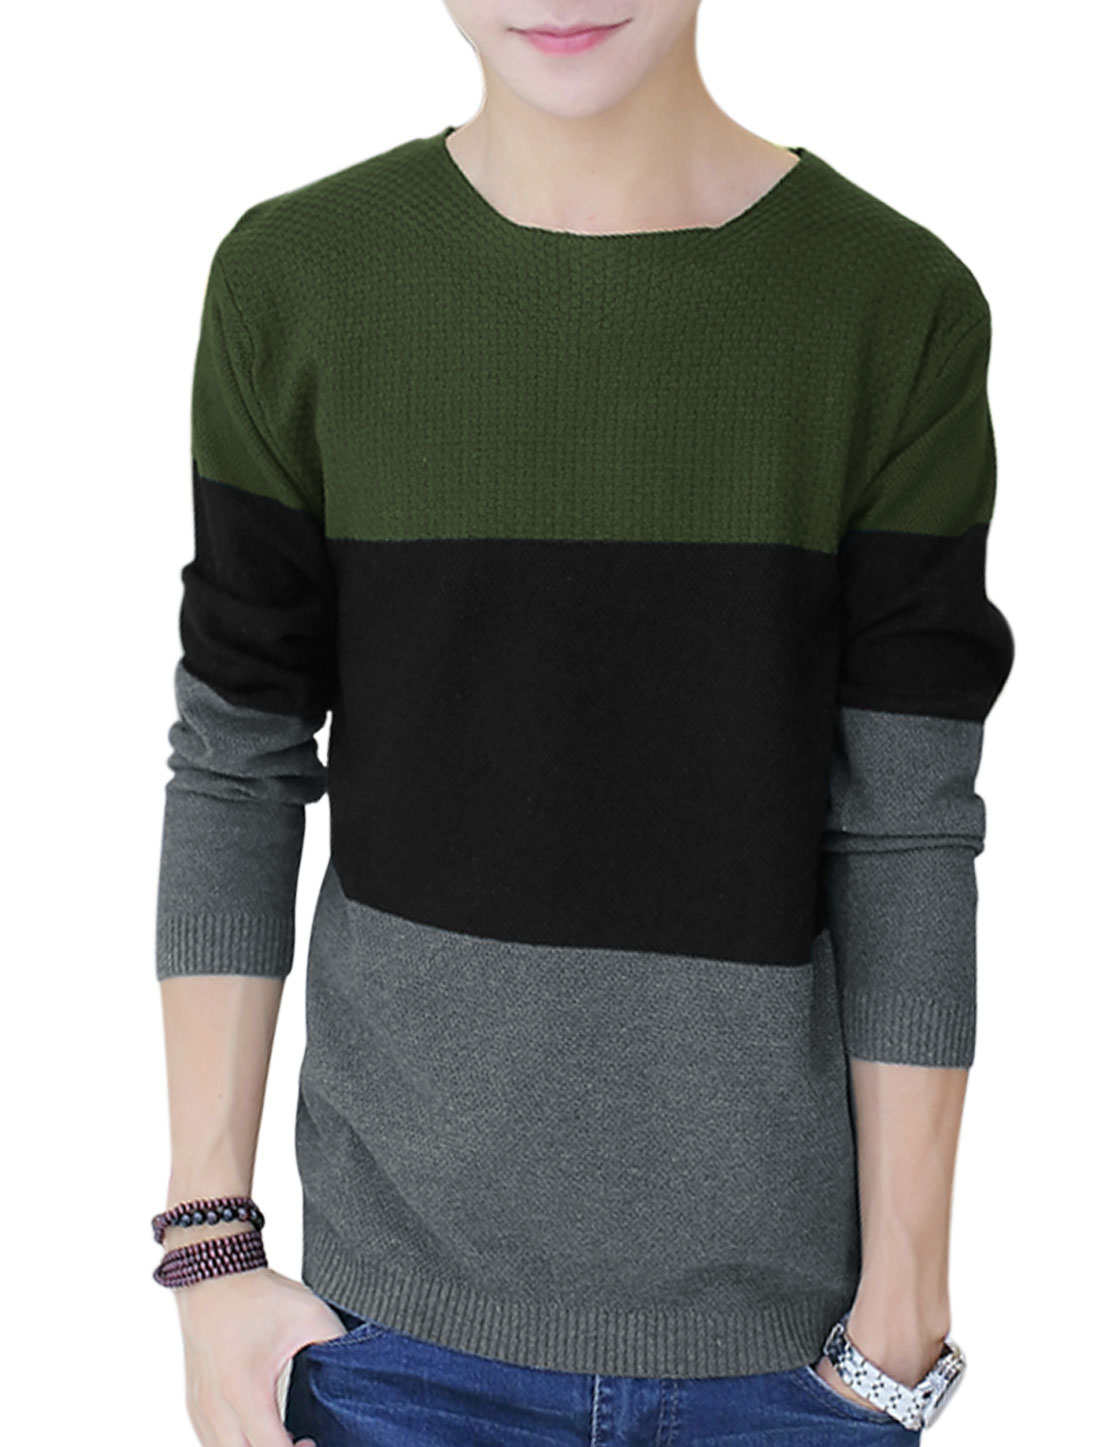 Men Round Neck Contrast Color Long Sleeve Casual Knit Shirt Army Green S